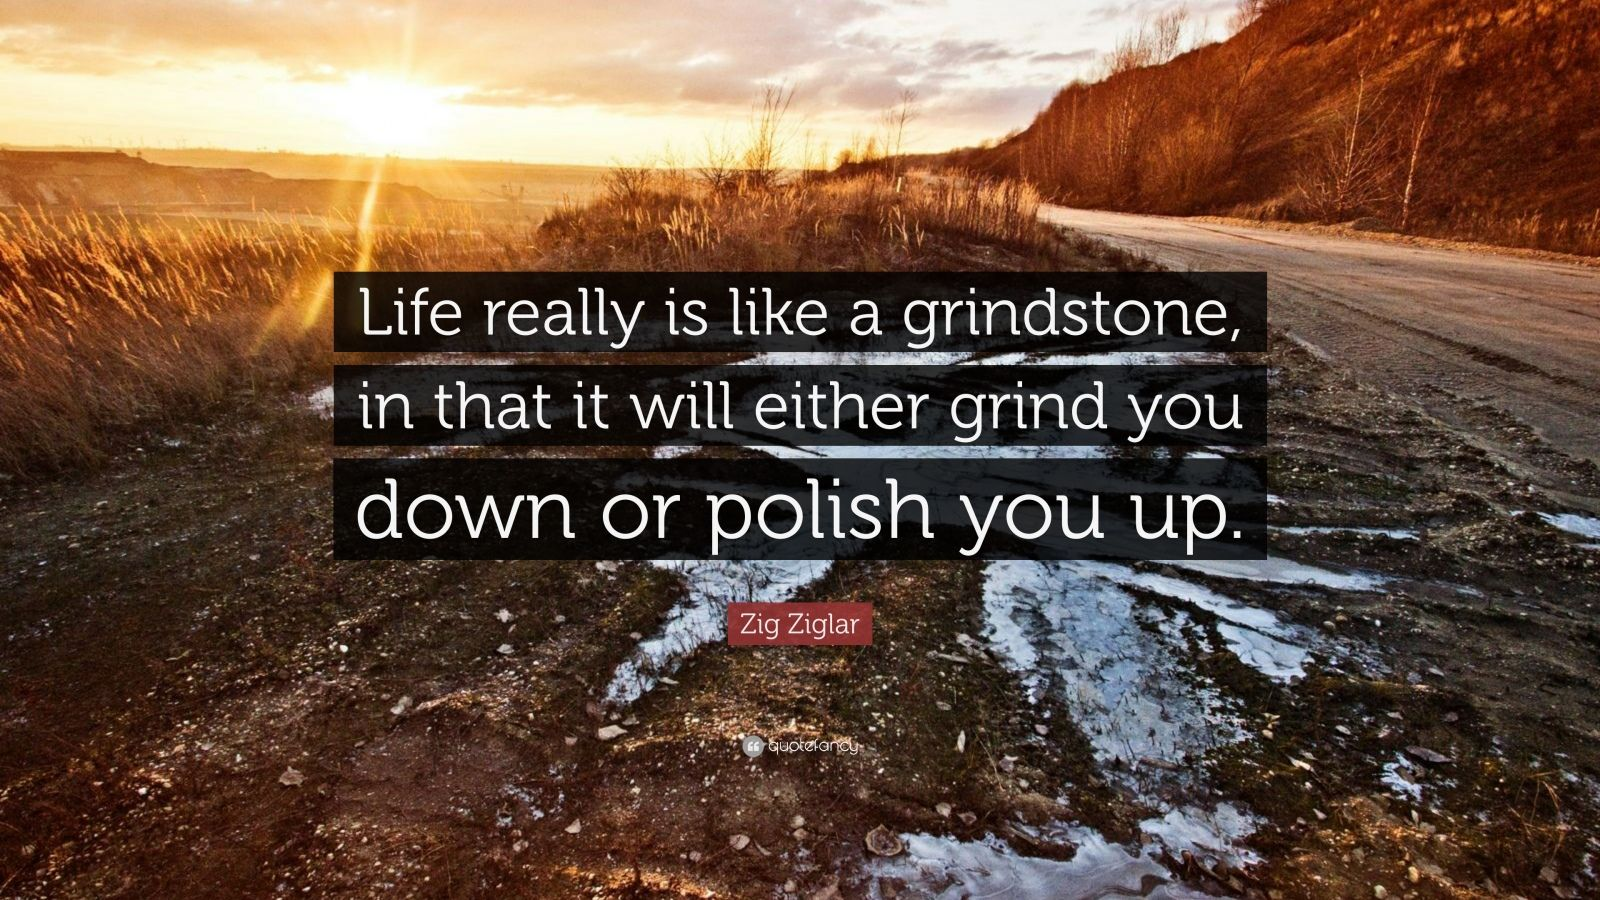 """Zig Ziglar Quote: """"Life really is like a grindstone, in that it will either grind you down or polish you up."""""""